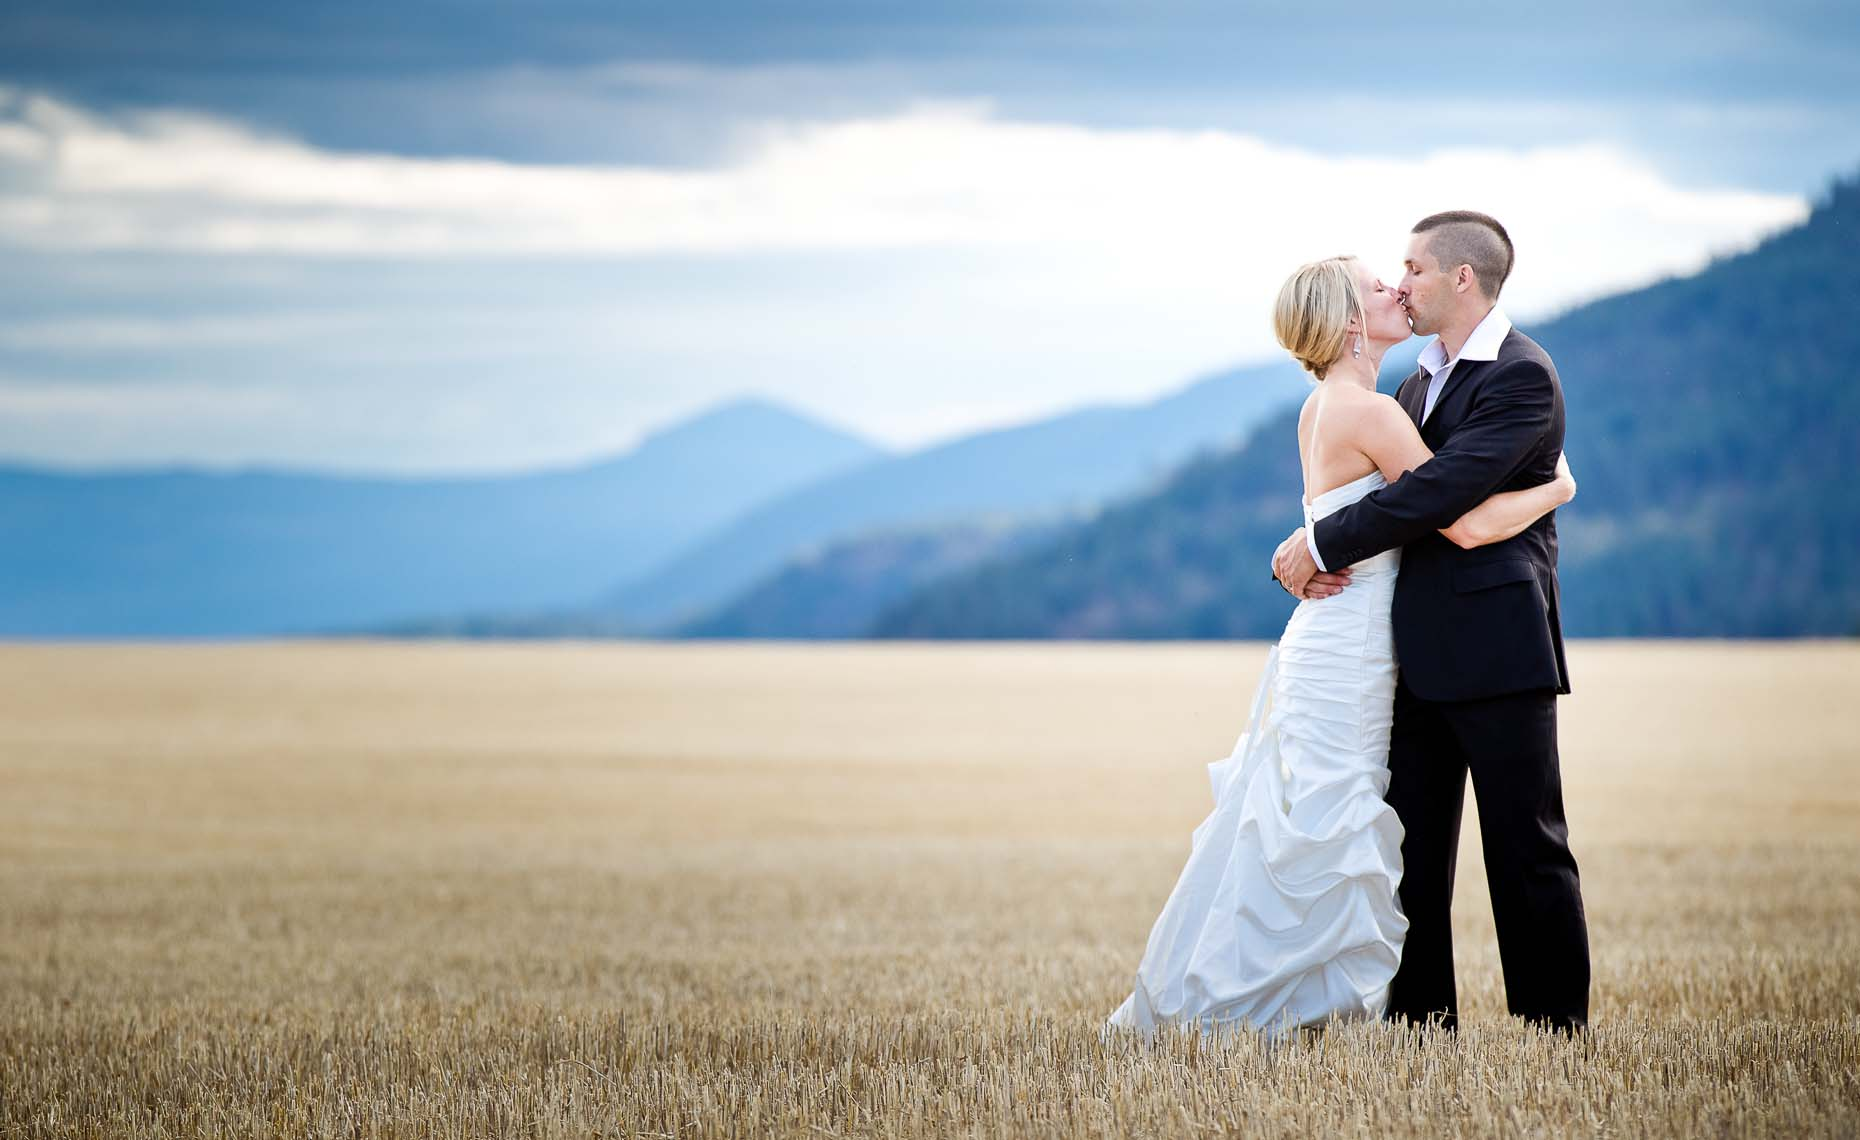 whistler wedding couple in pemberton field with mountains